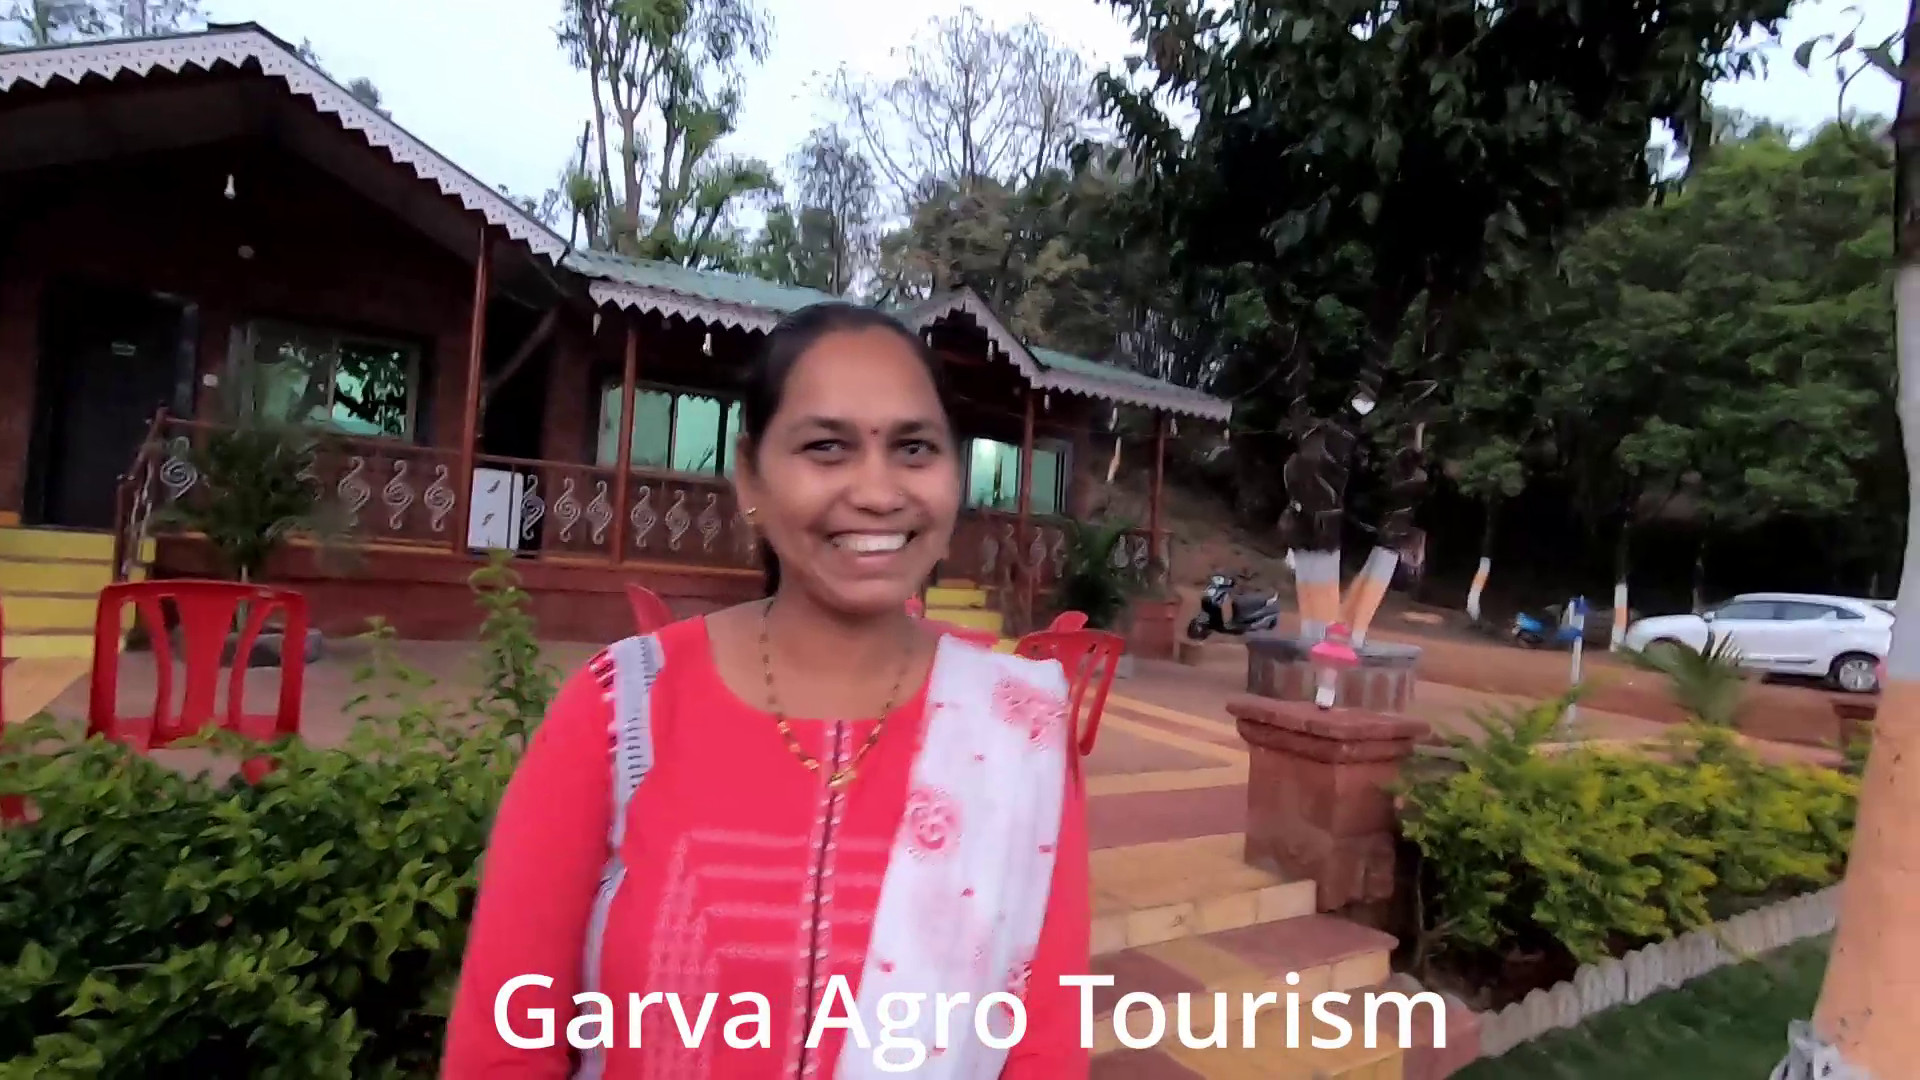 Garva Agro Tourism Interview of owner